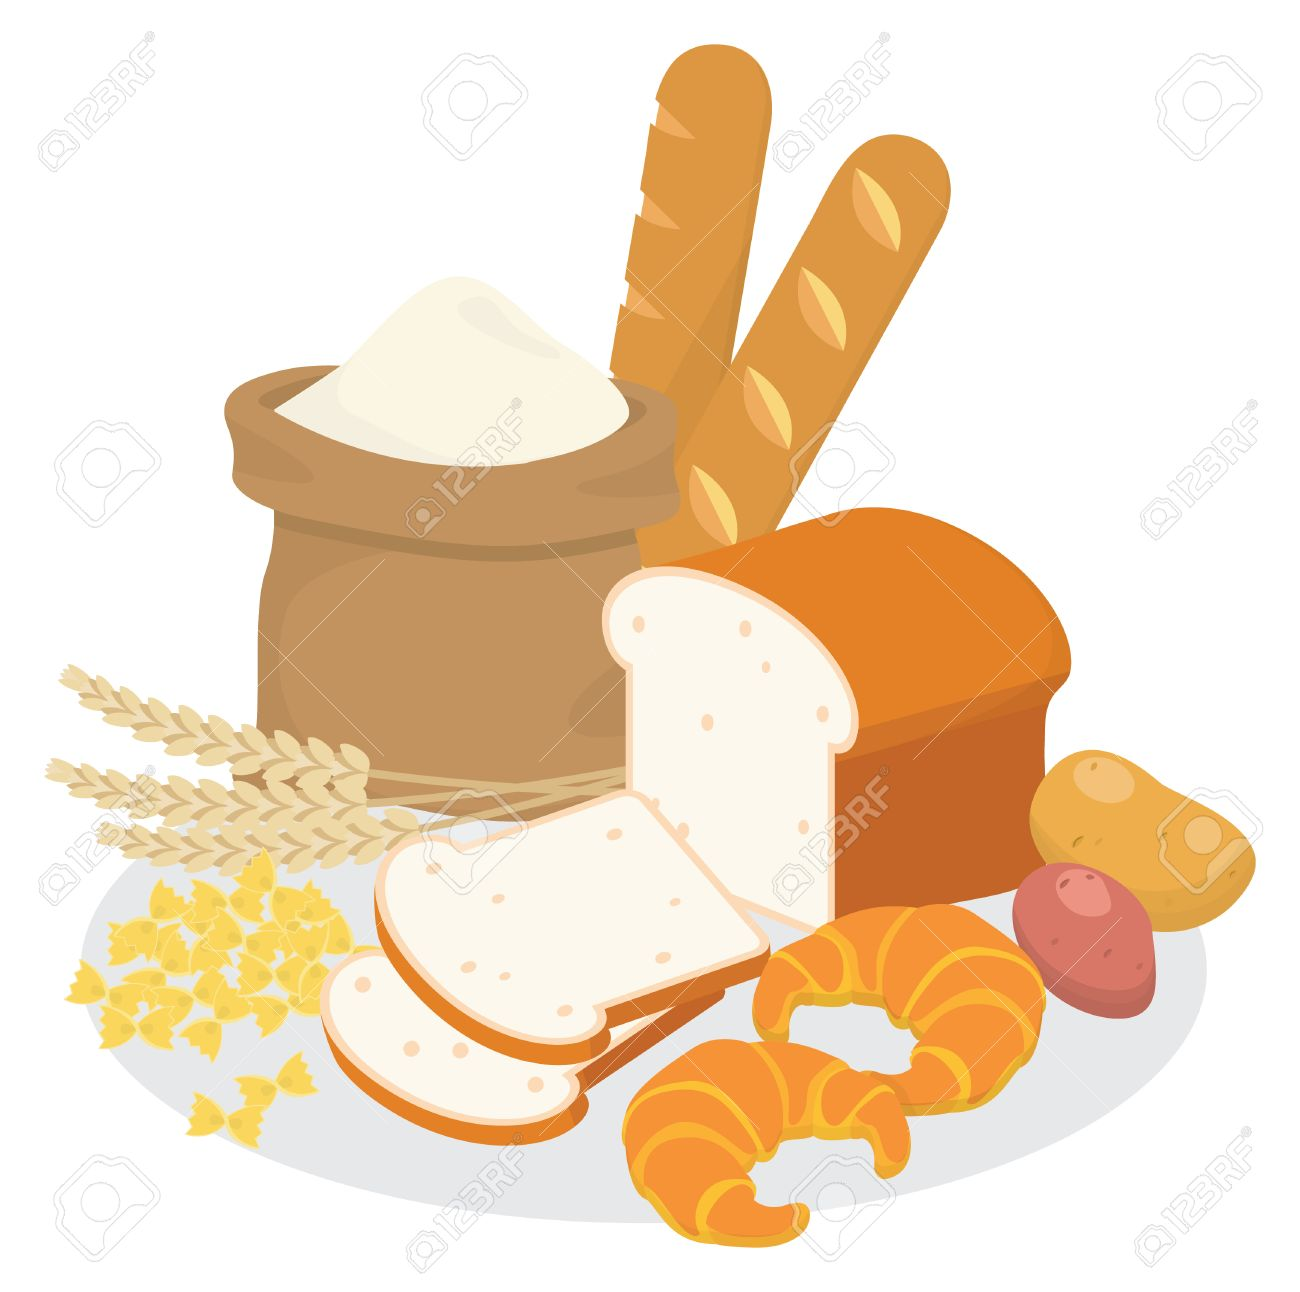 Carbohydrates Food Sources, Top View On A Table Stock Image - Image of  oatmeal, potatoes: 119623709